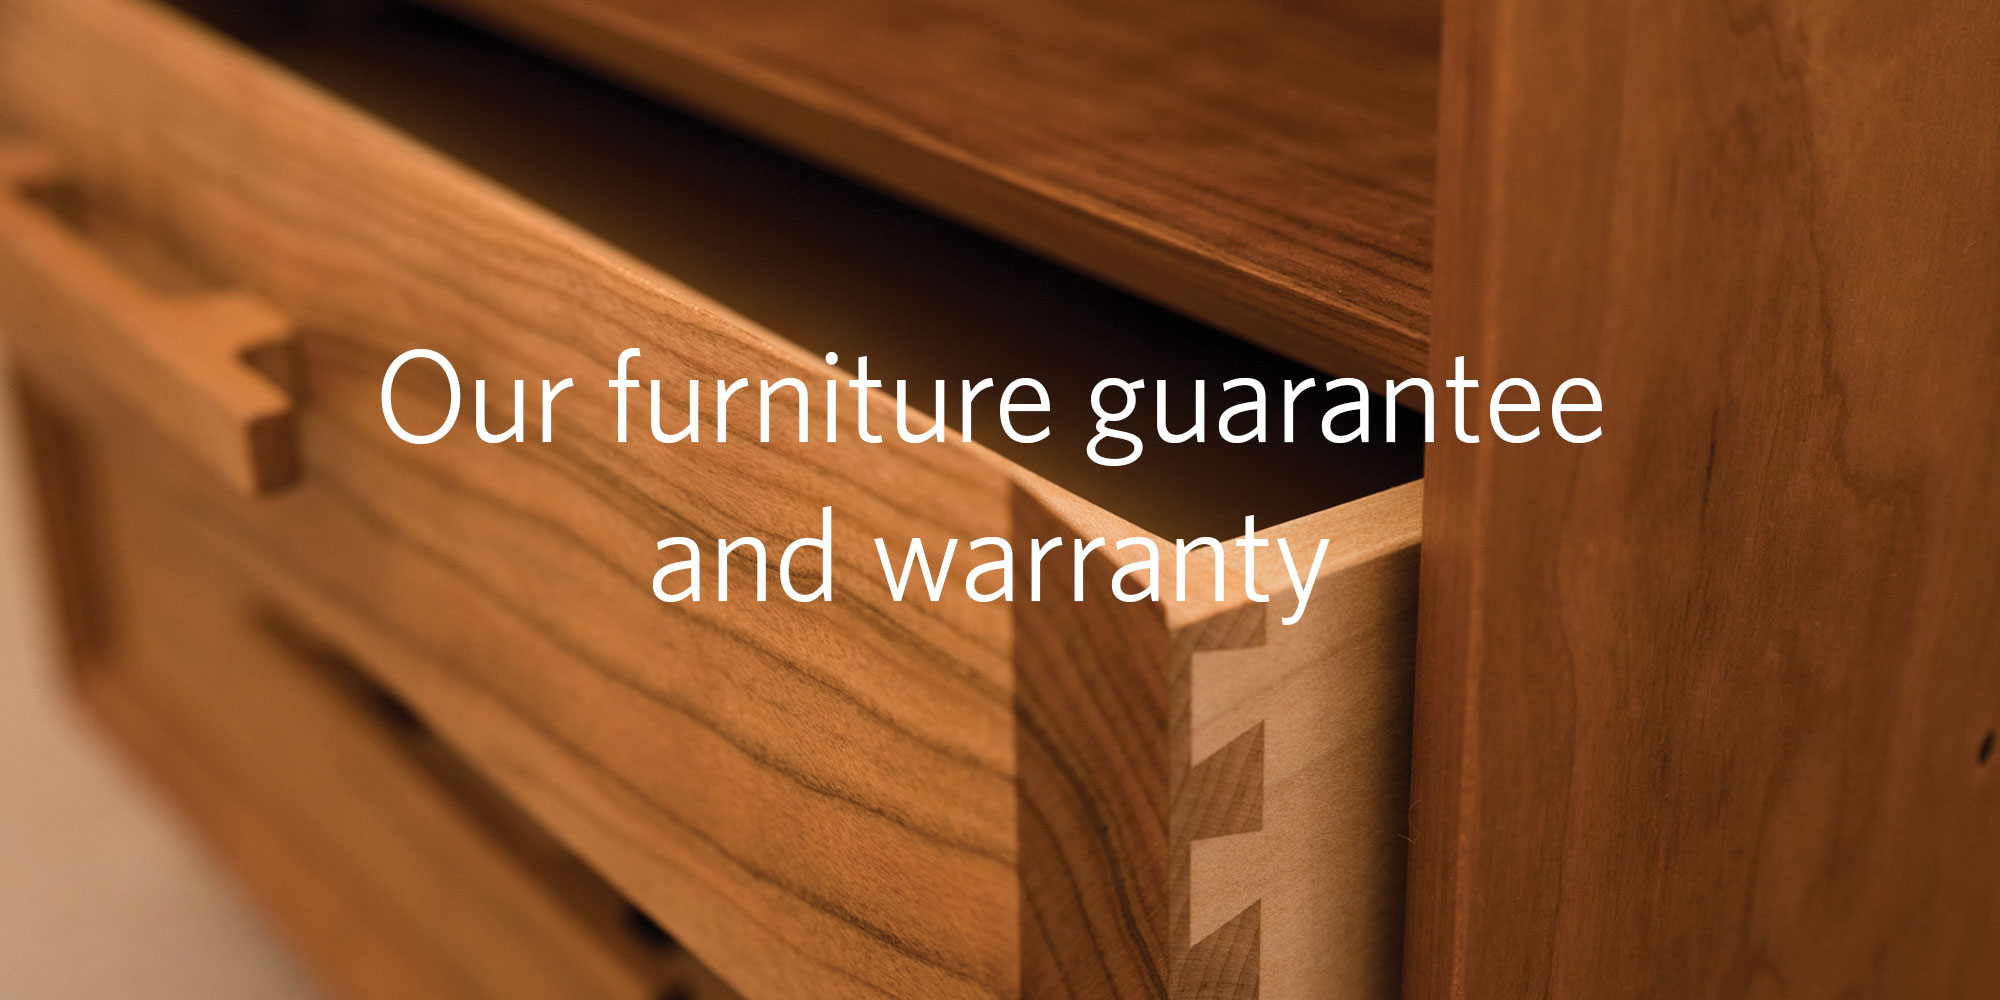 Banner image: Our furniture guarantee and warranty